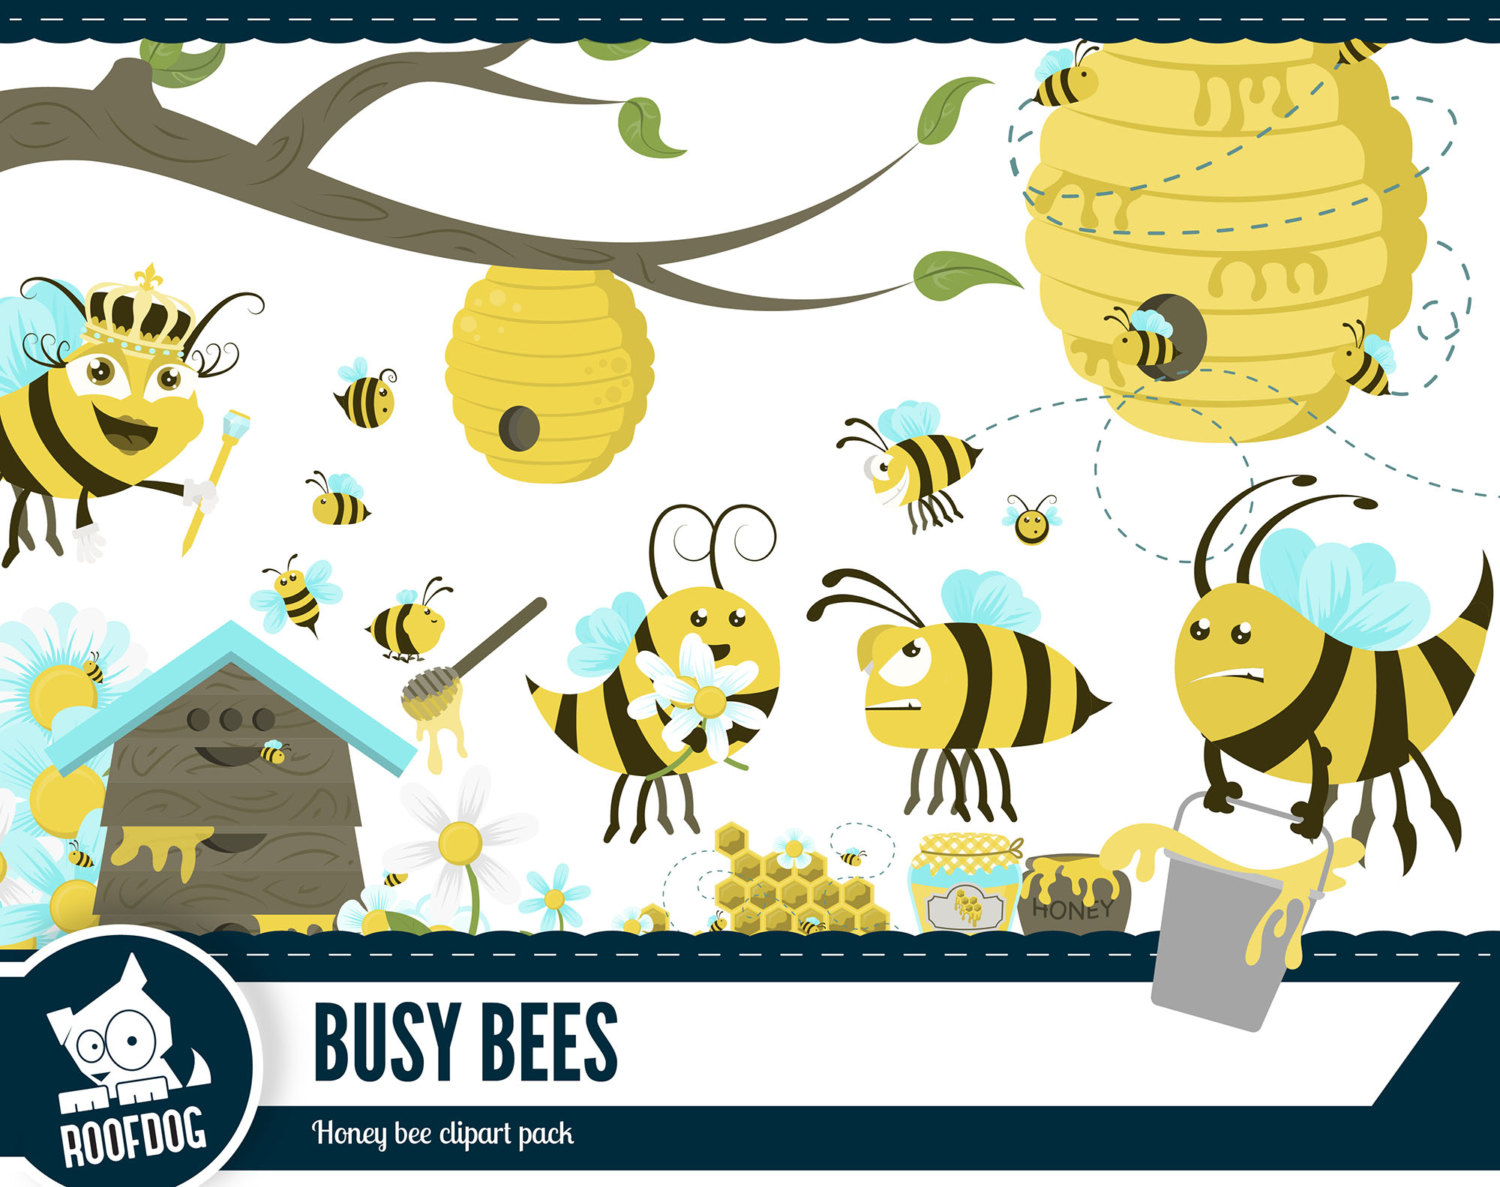 Bee Hive clipart printable Busy This clipart Honey is